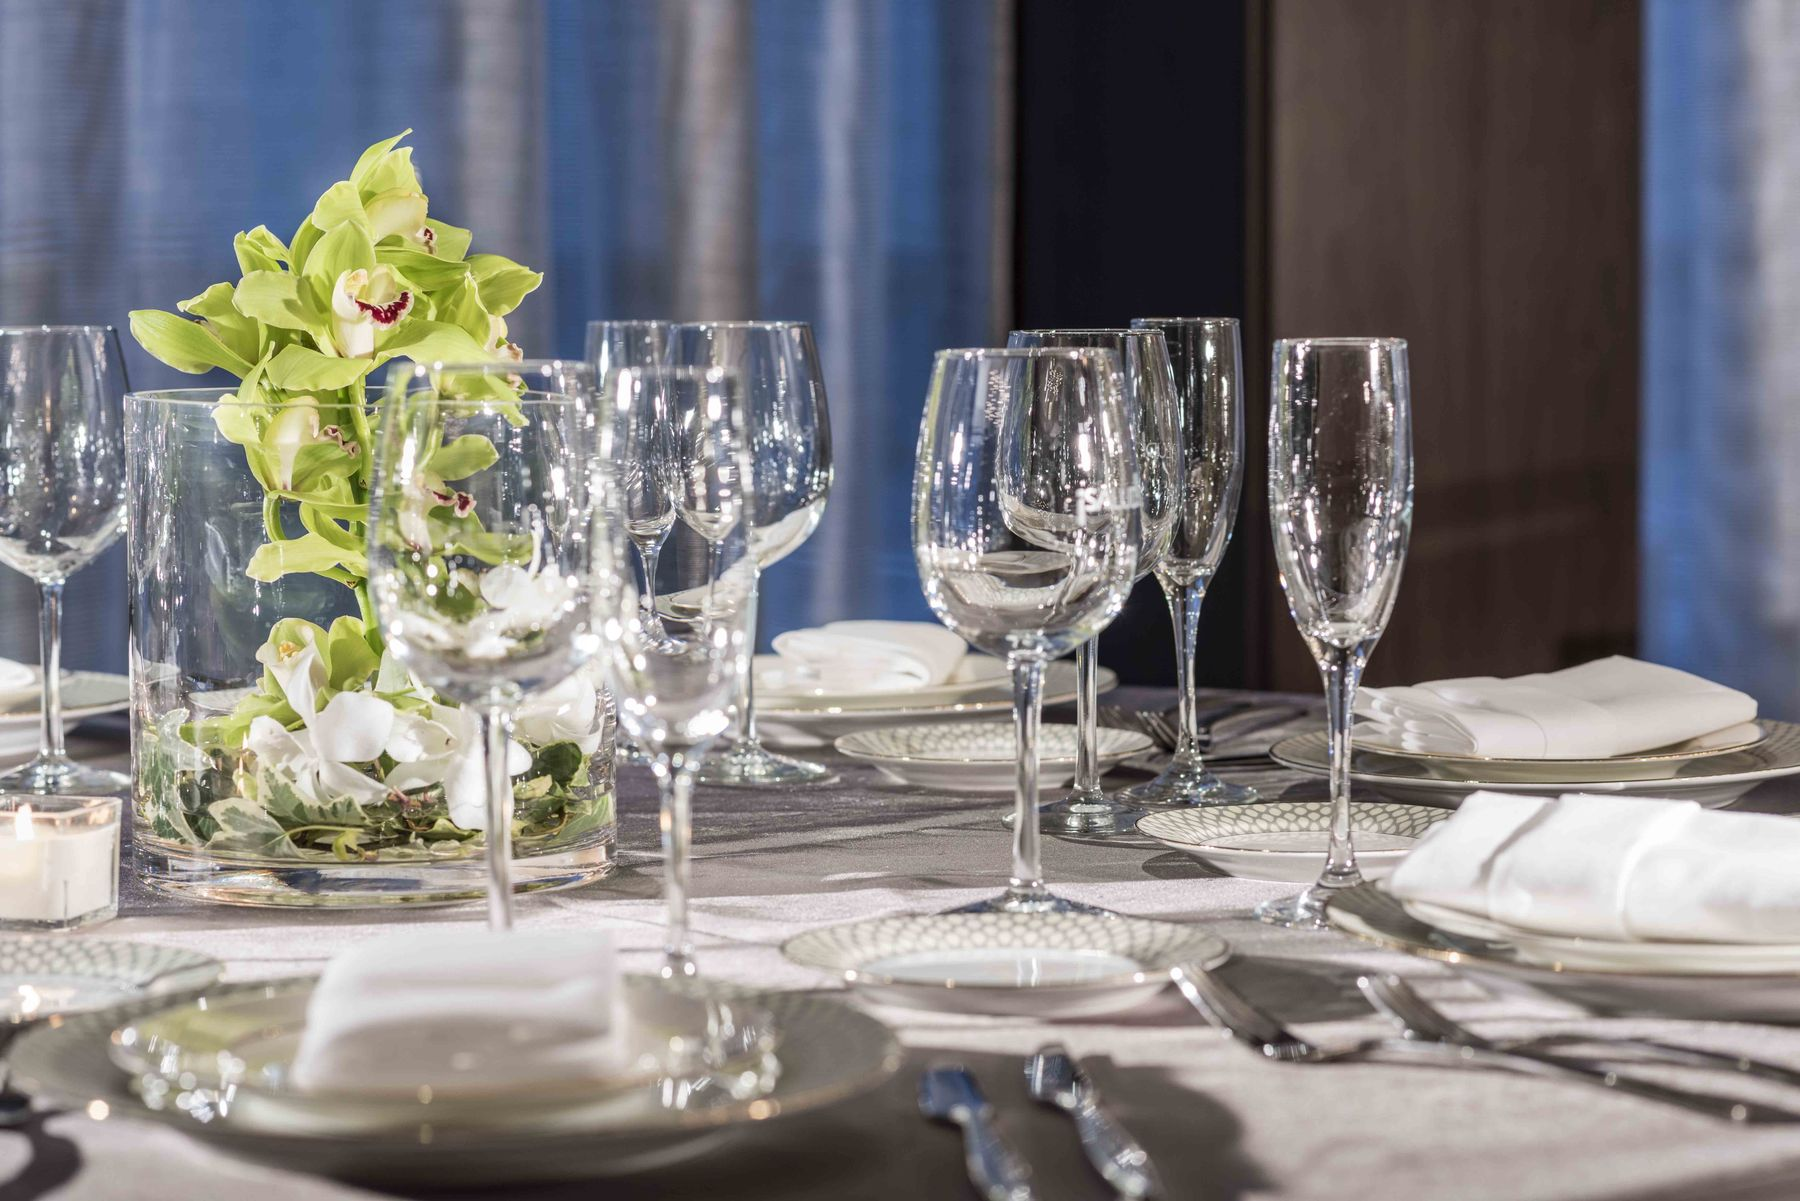 Formal place settings and floral arrangement on banquet table